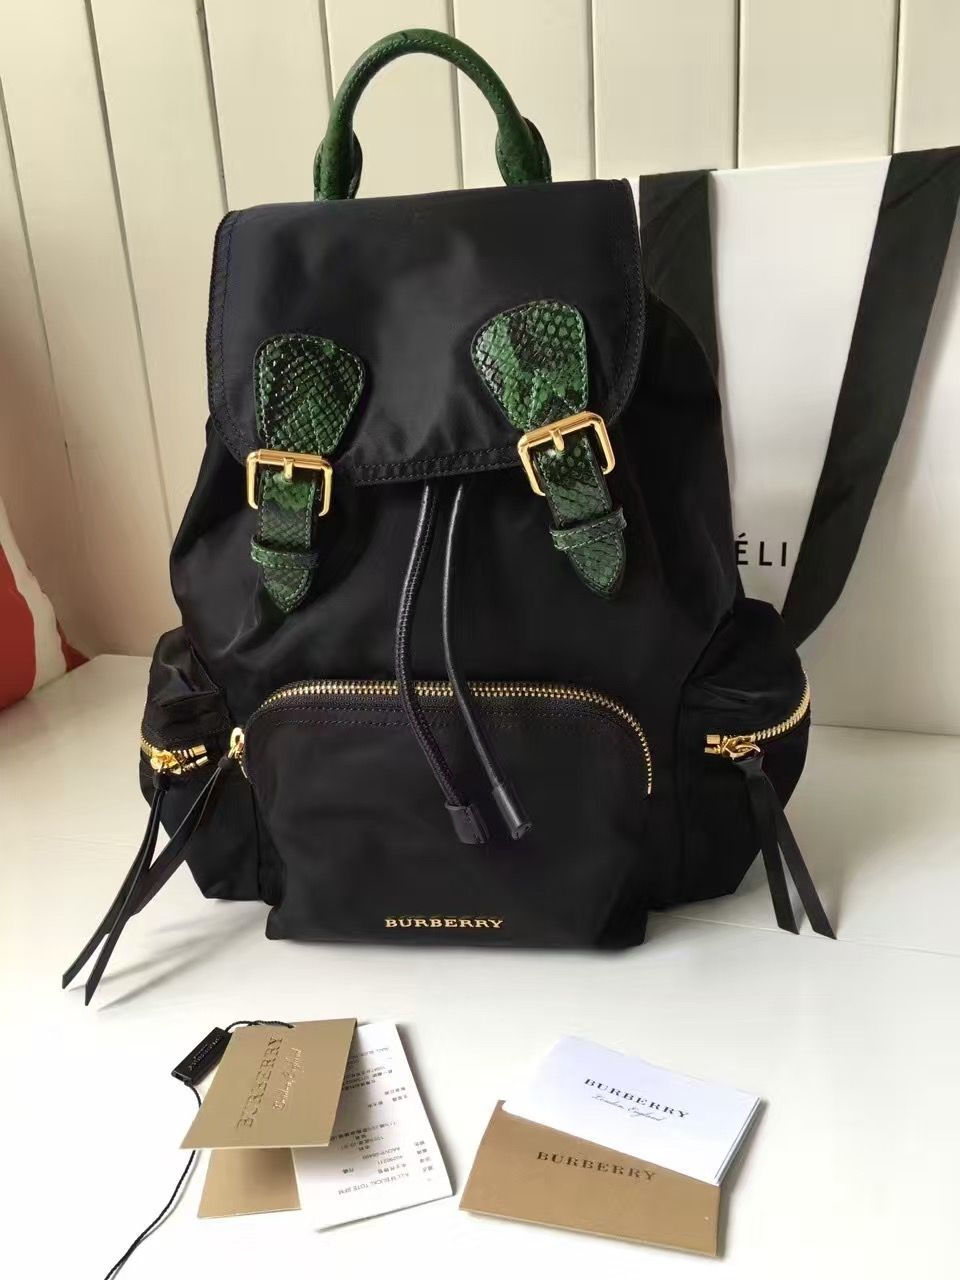 4cc7445a103 Burberry Medium Rucksace In Technical Nylon and Snakeskin Black 2016  Burberry Backpack